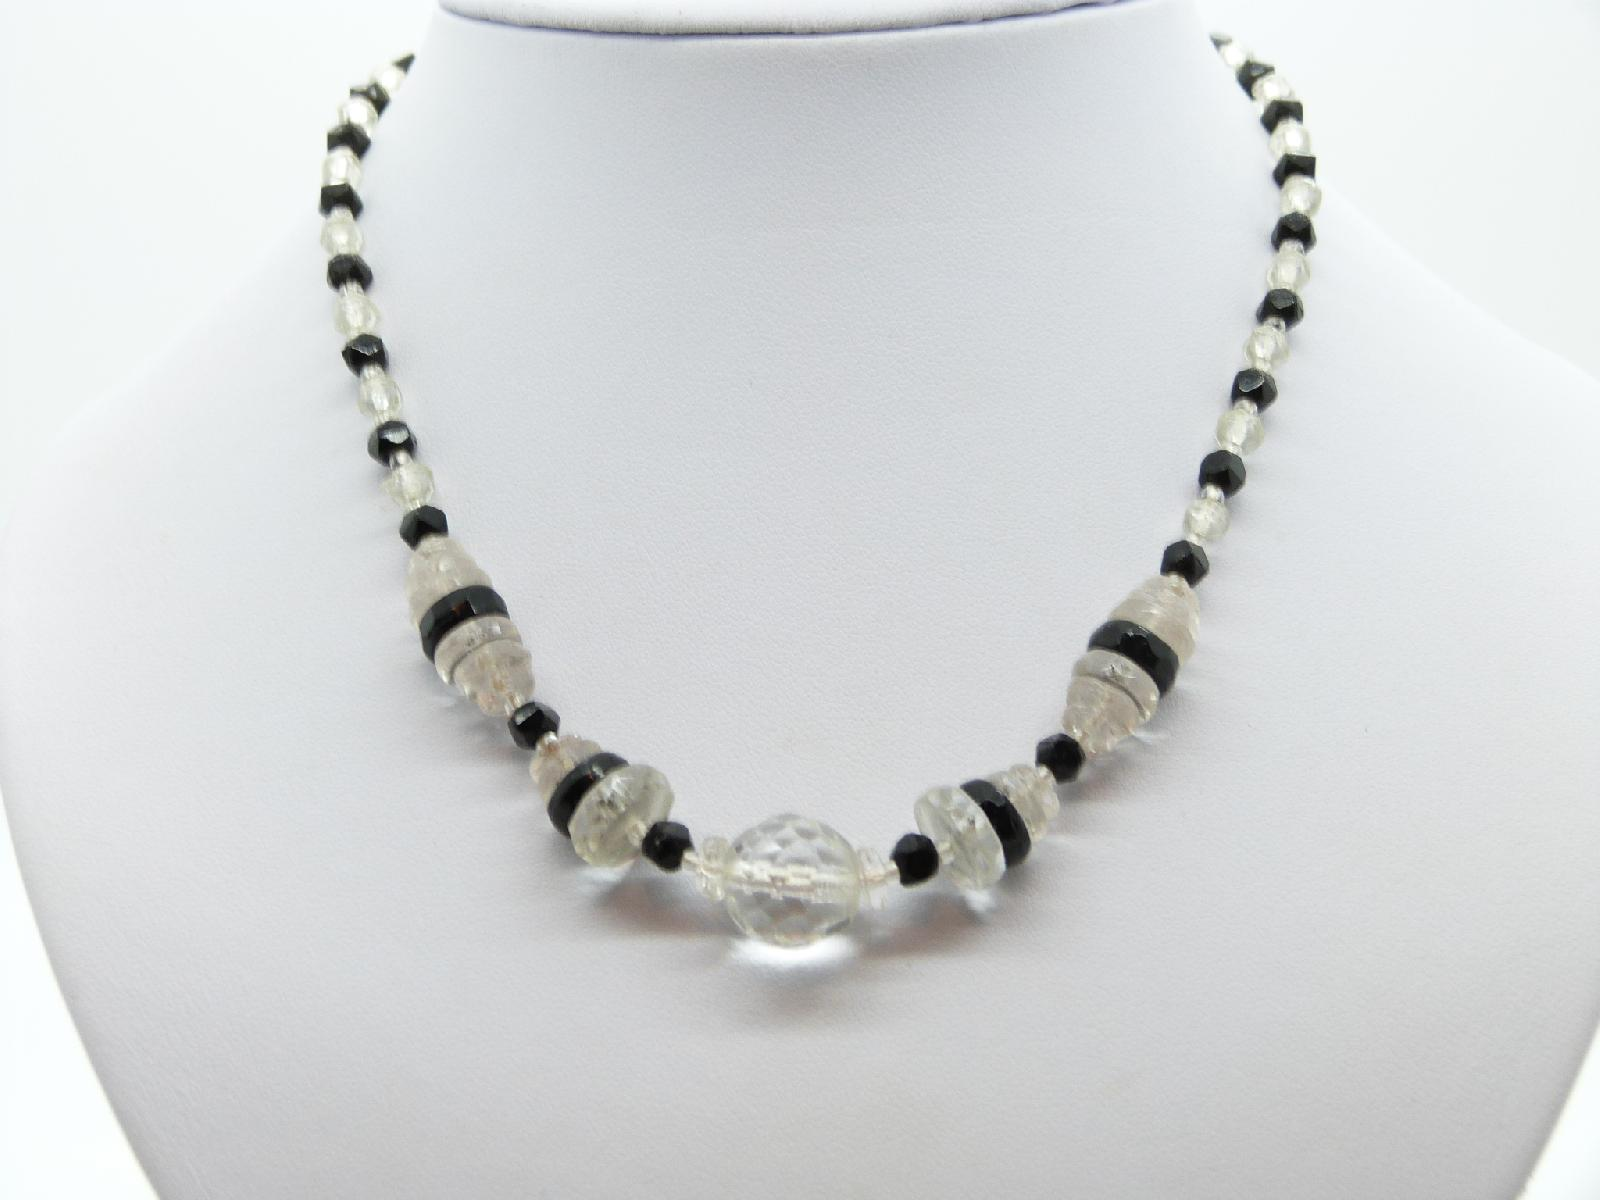 £35.00 - Vintage 30s Geometric Art Deco Black and Clear Glass Crystal Bead Necklace